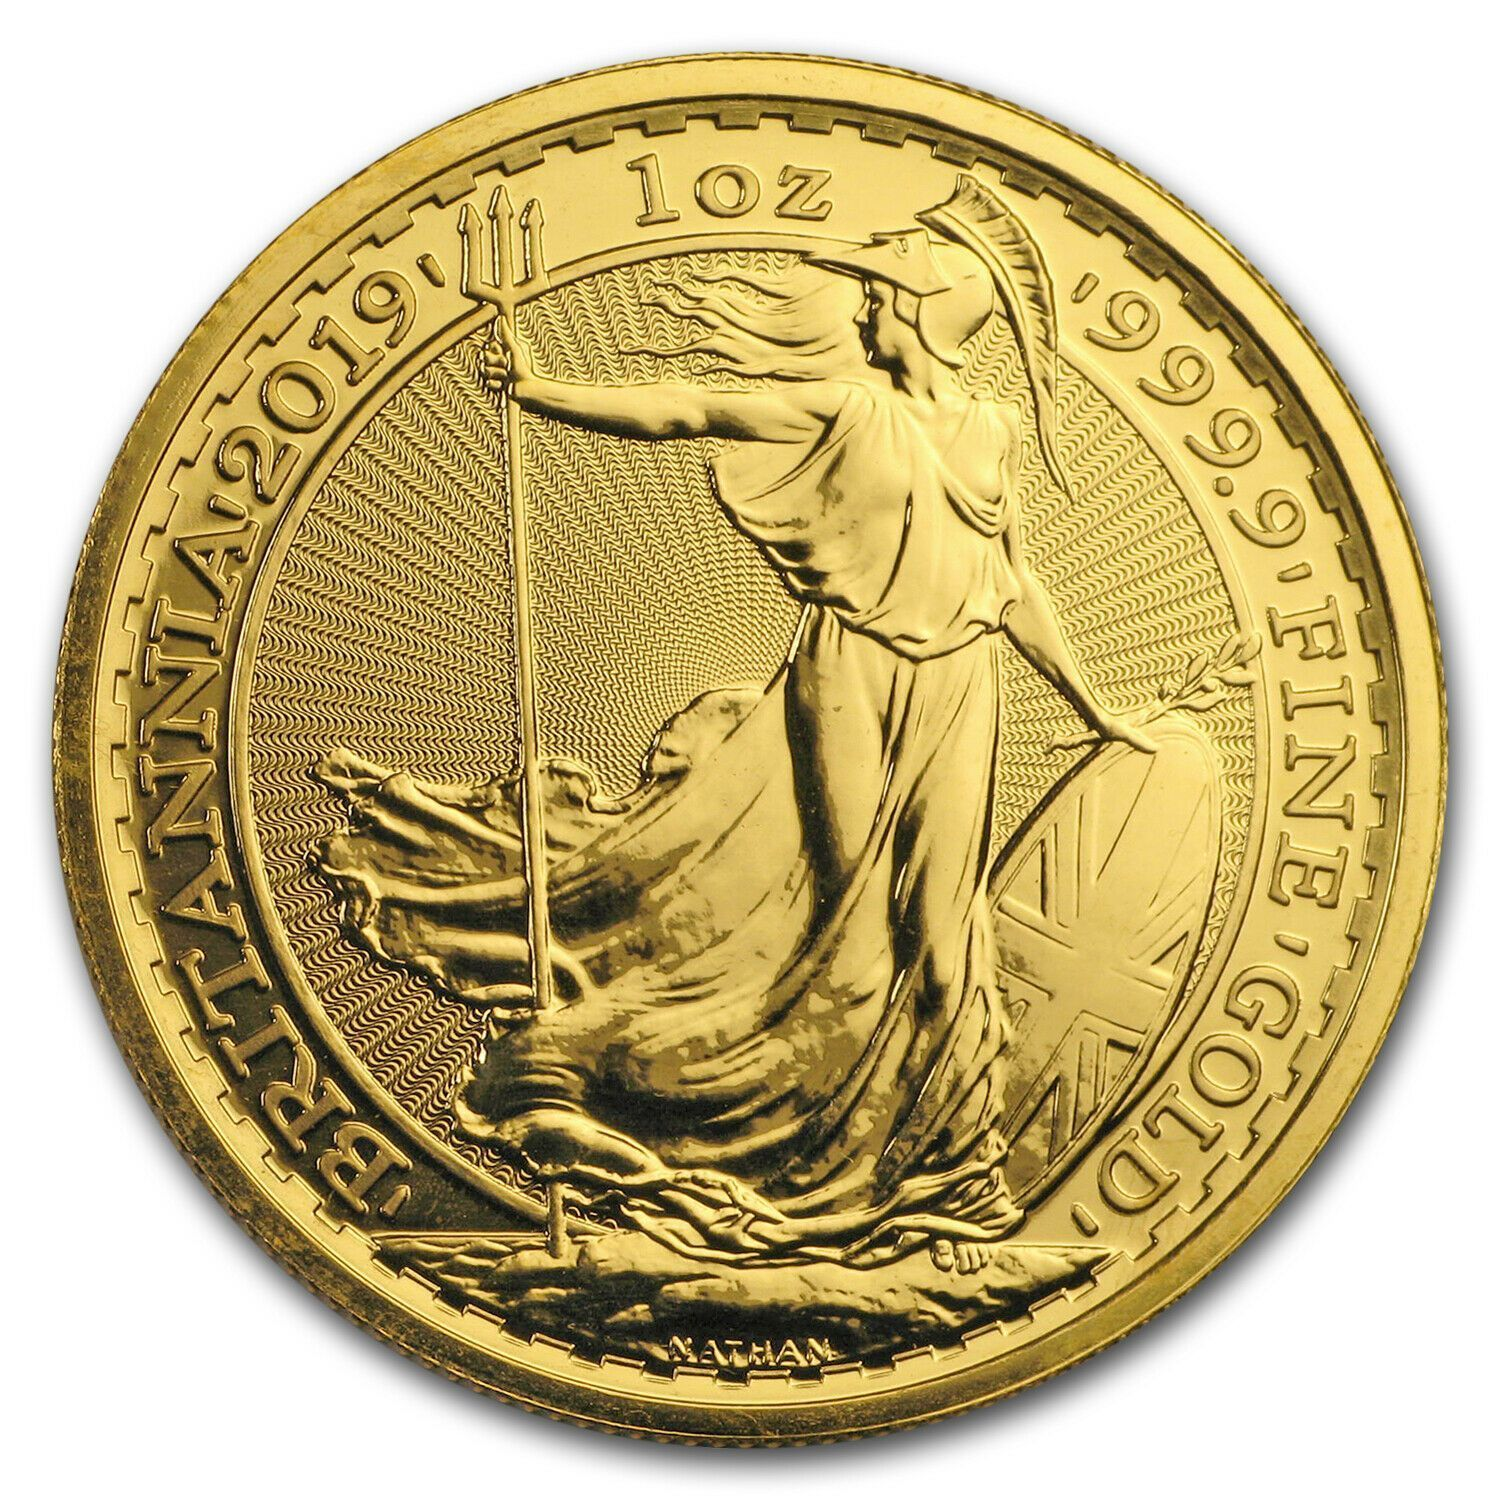 2020 British Royal Mint Gold Britannia 1 oz Coin